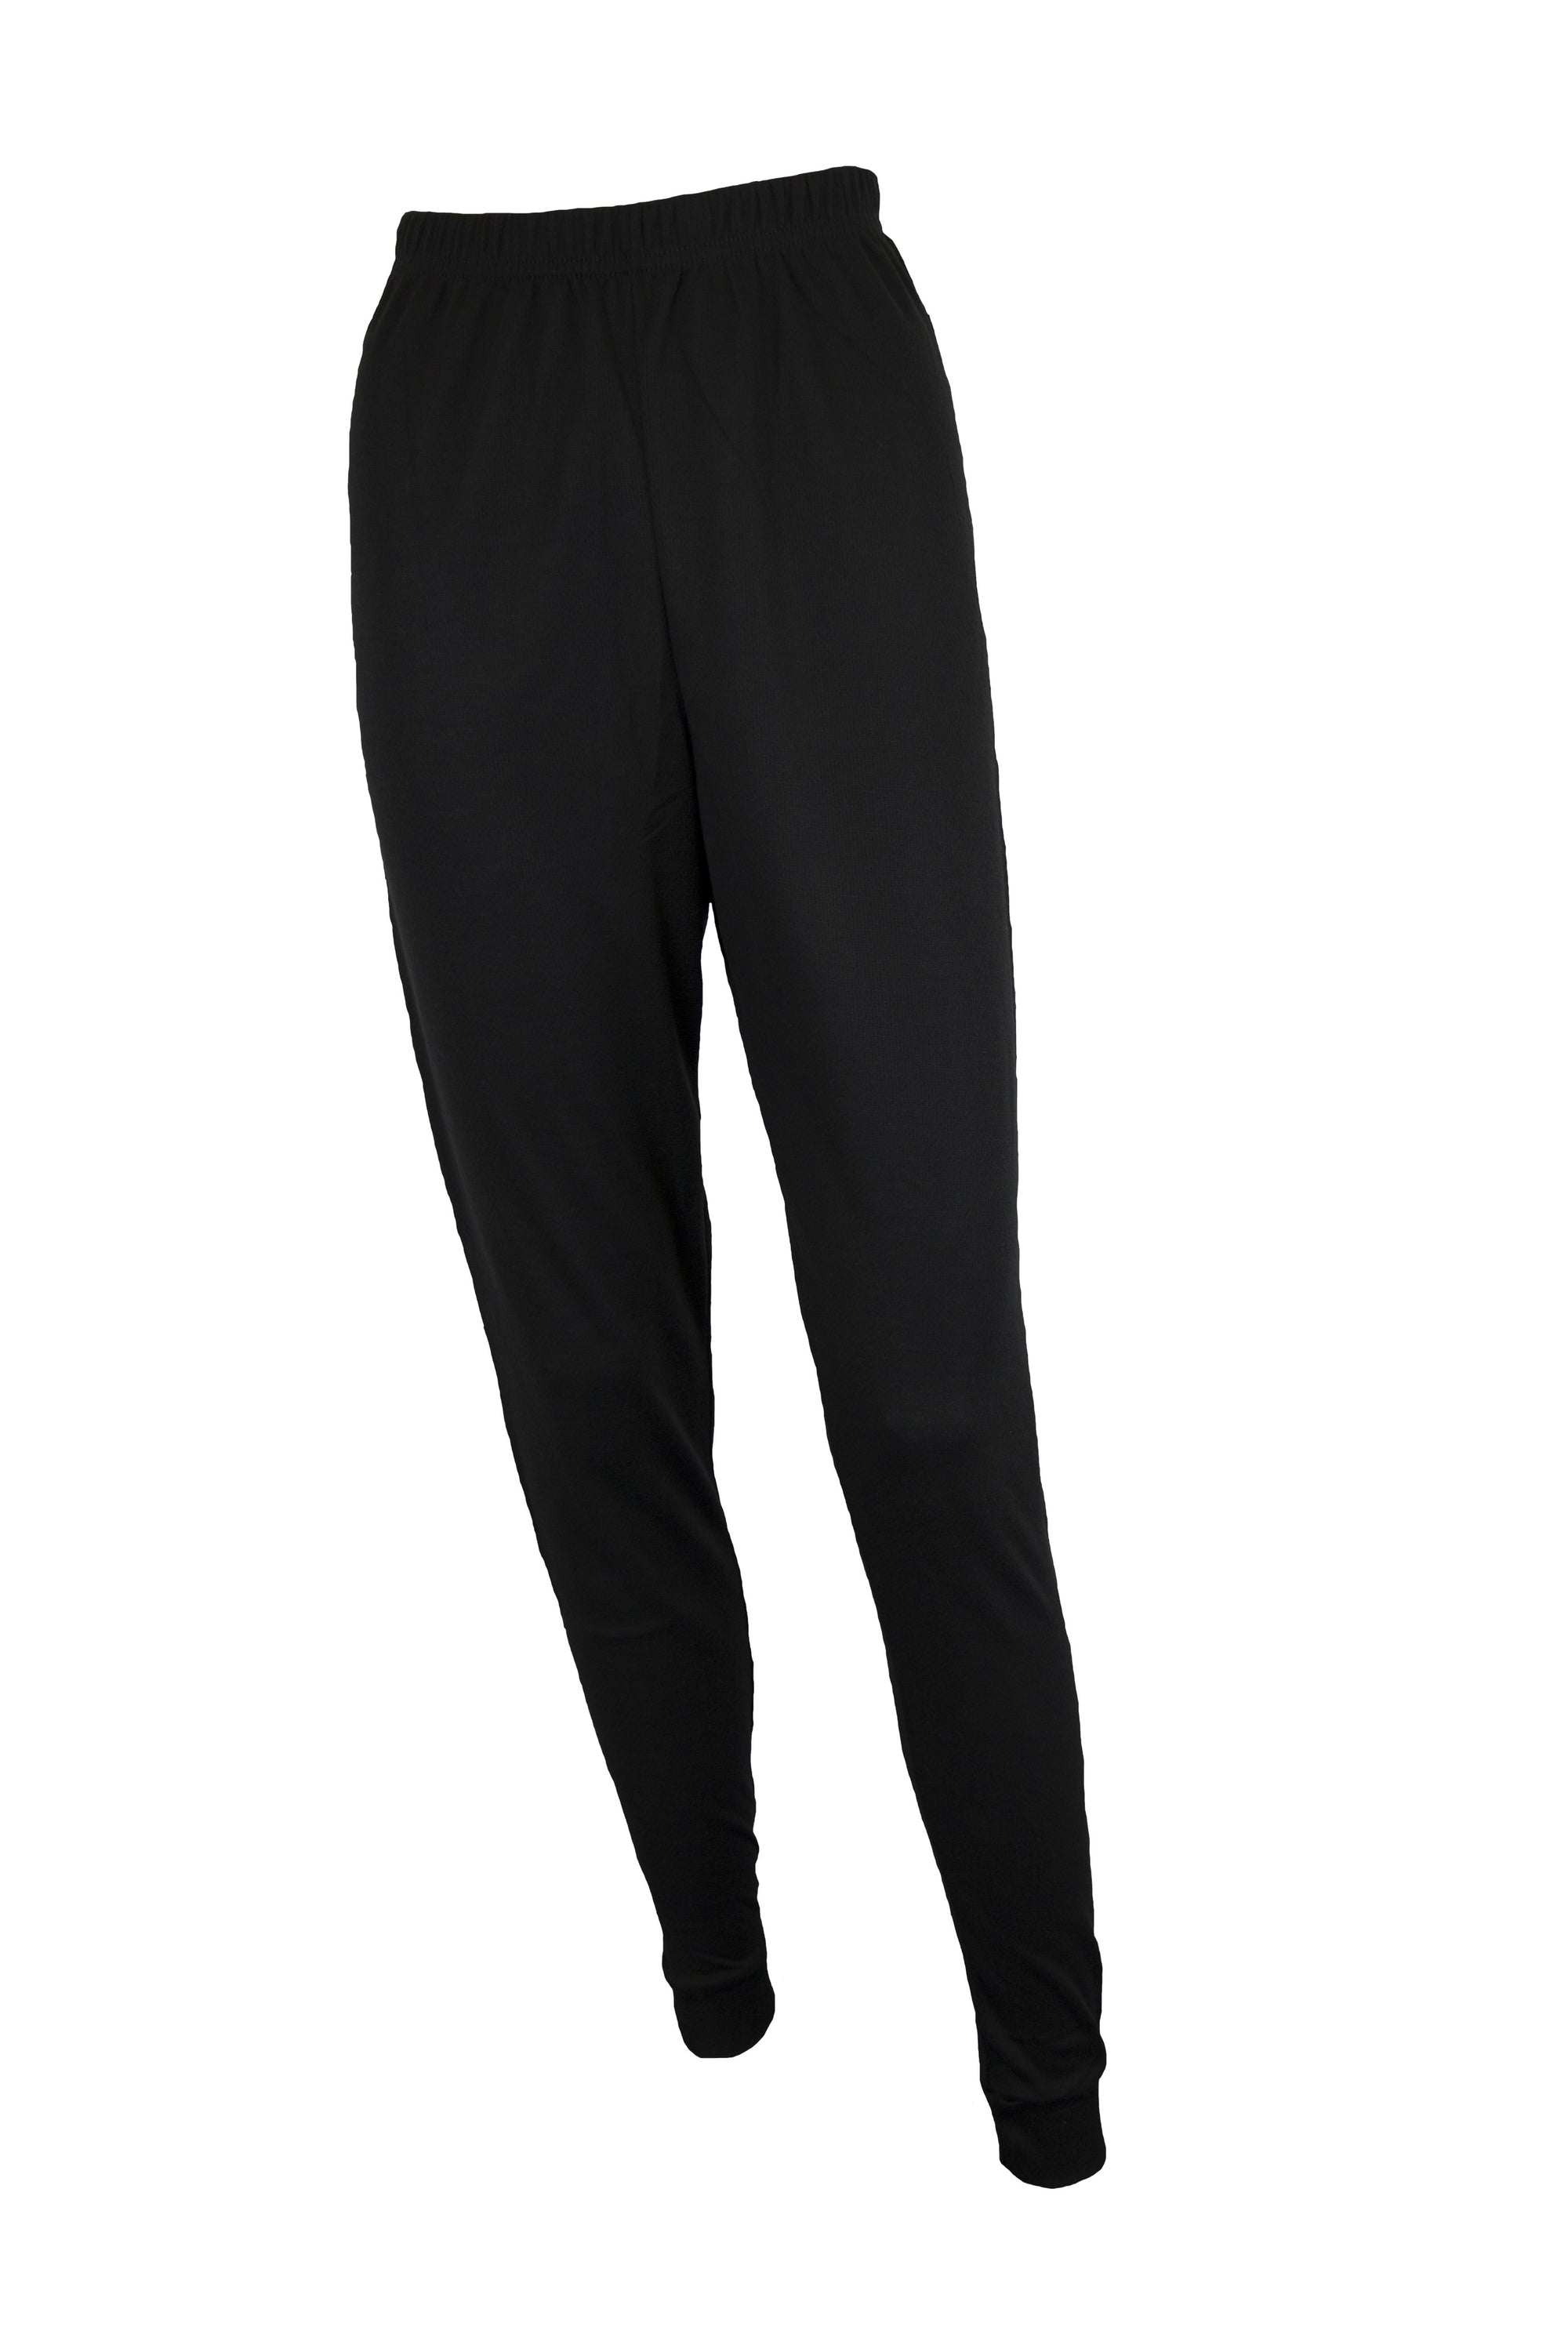 Ladies Outlast Mid-wight Base Layer Bottom